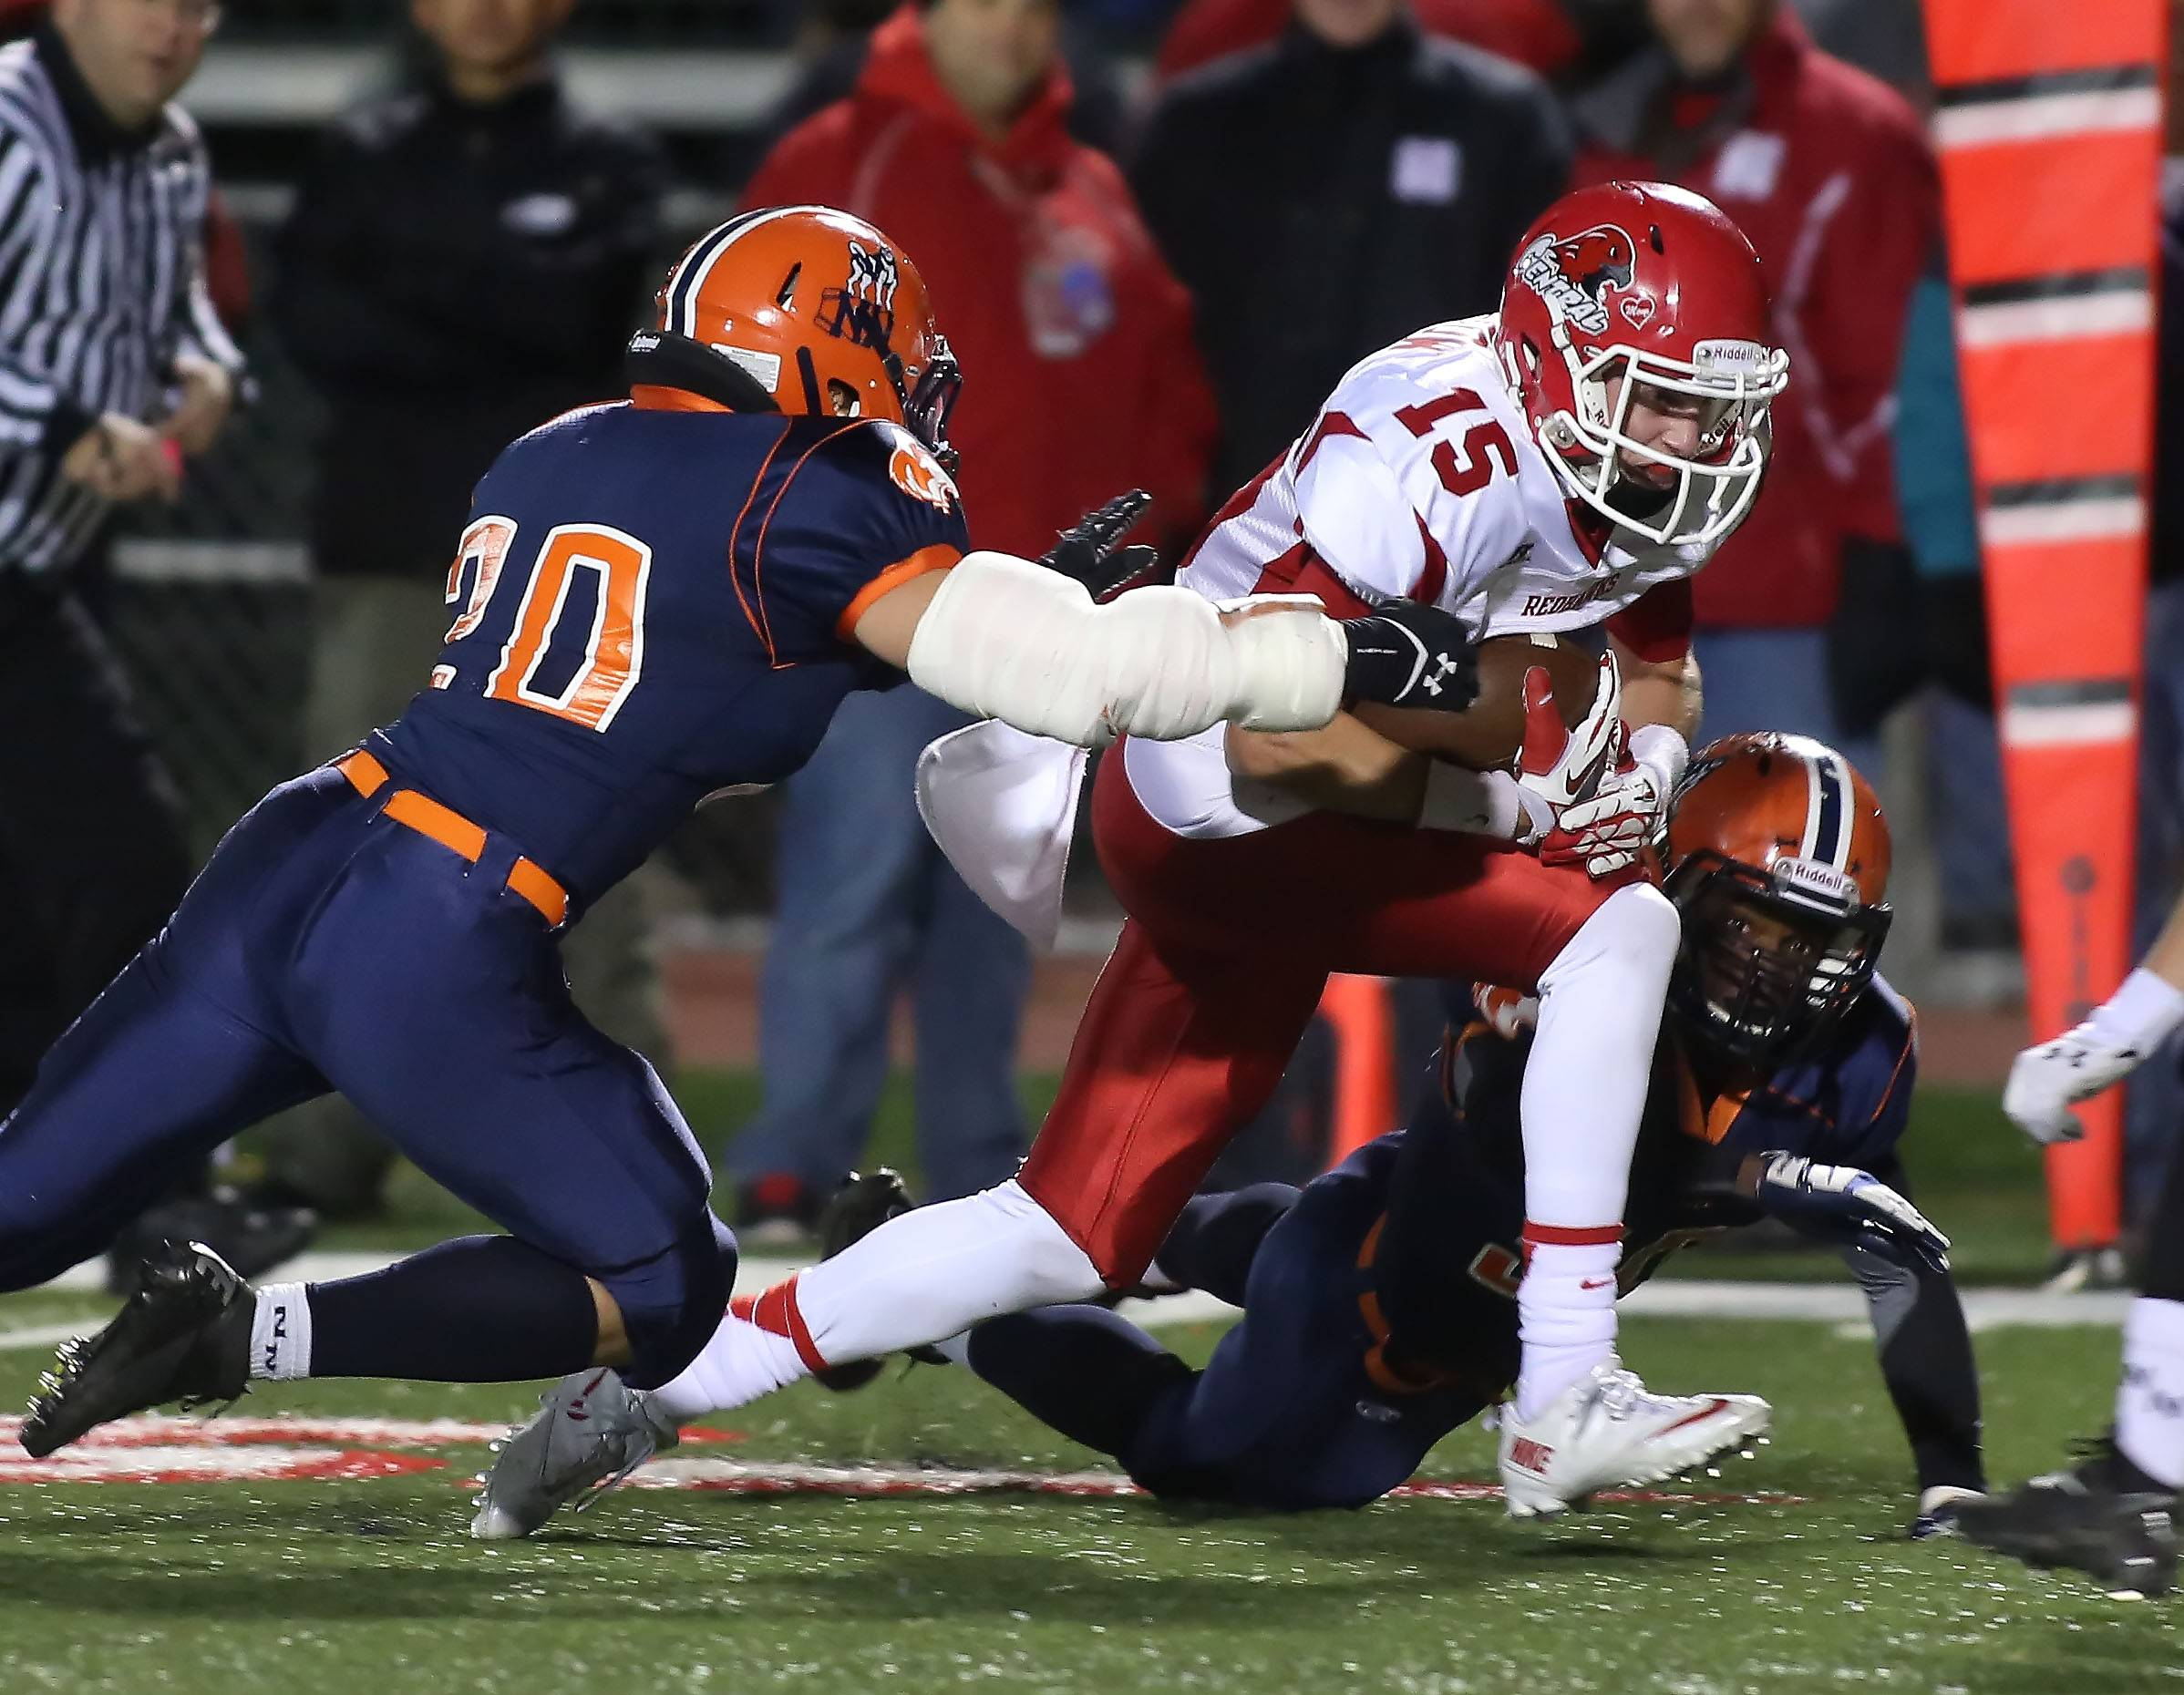 Michael Kolzow of Naperville Central moves the ball through the Naperville North defense during football action on Friday at North Central College.